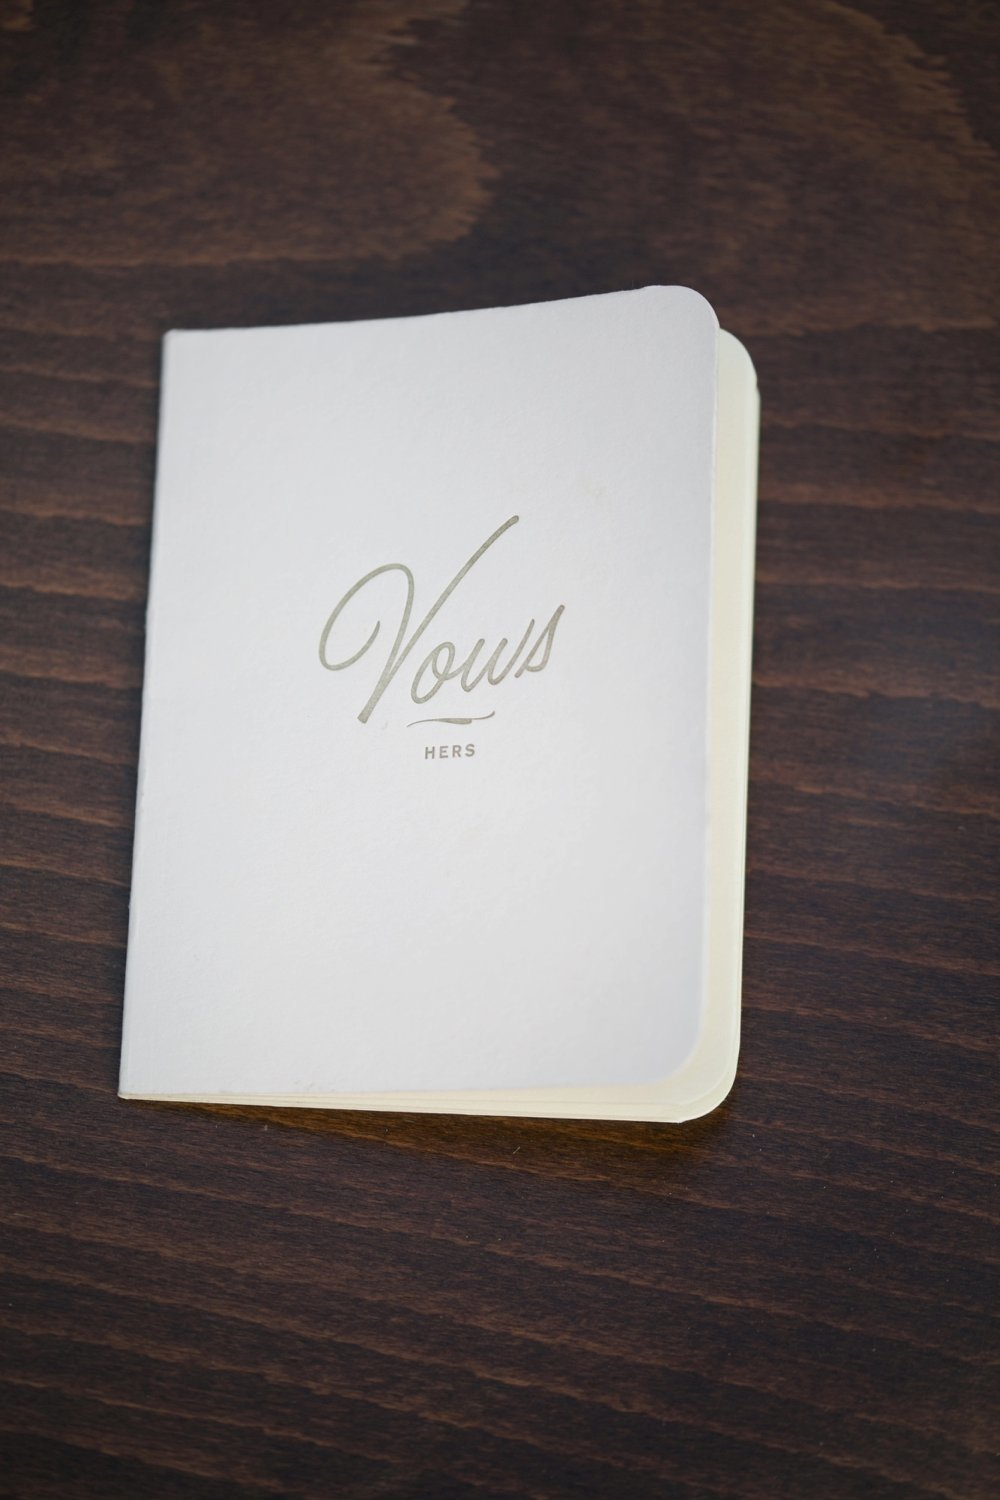 This wedding ceremony vow booklet held the vows for Vanessa & Lauren's same sex destination wedding.